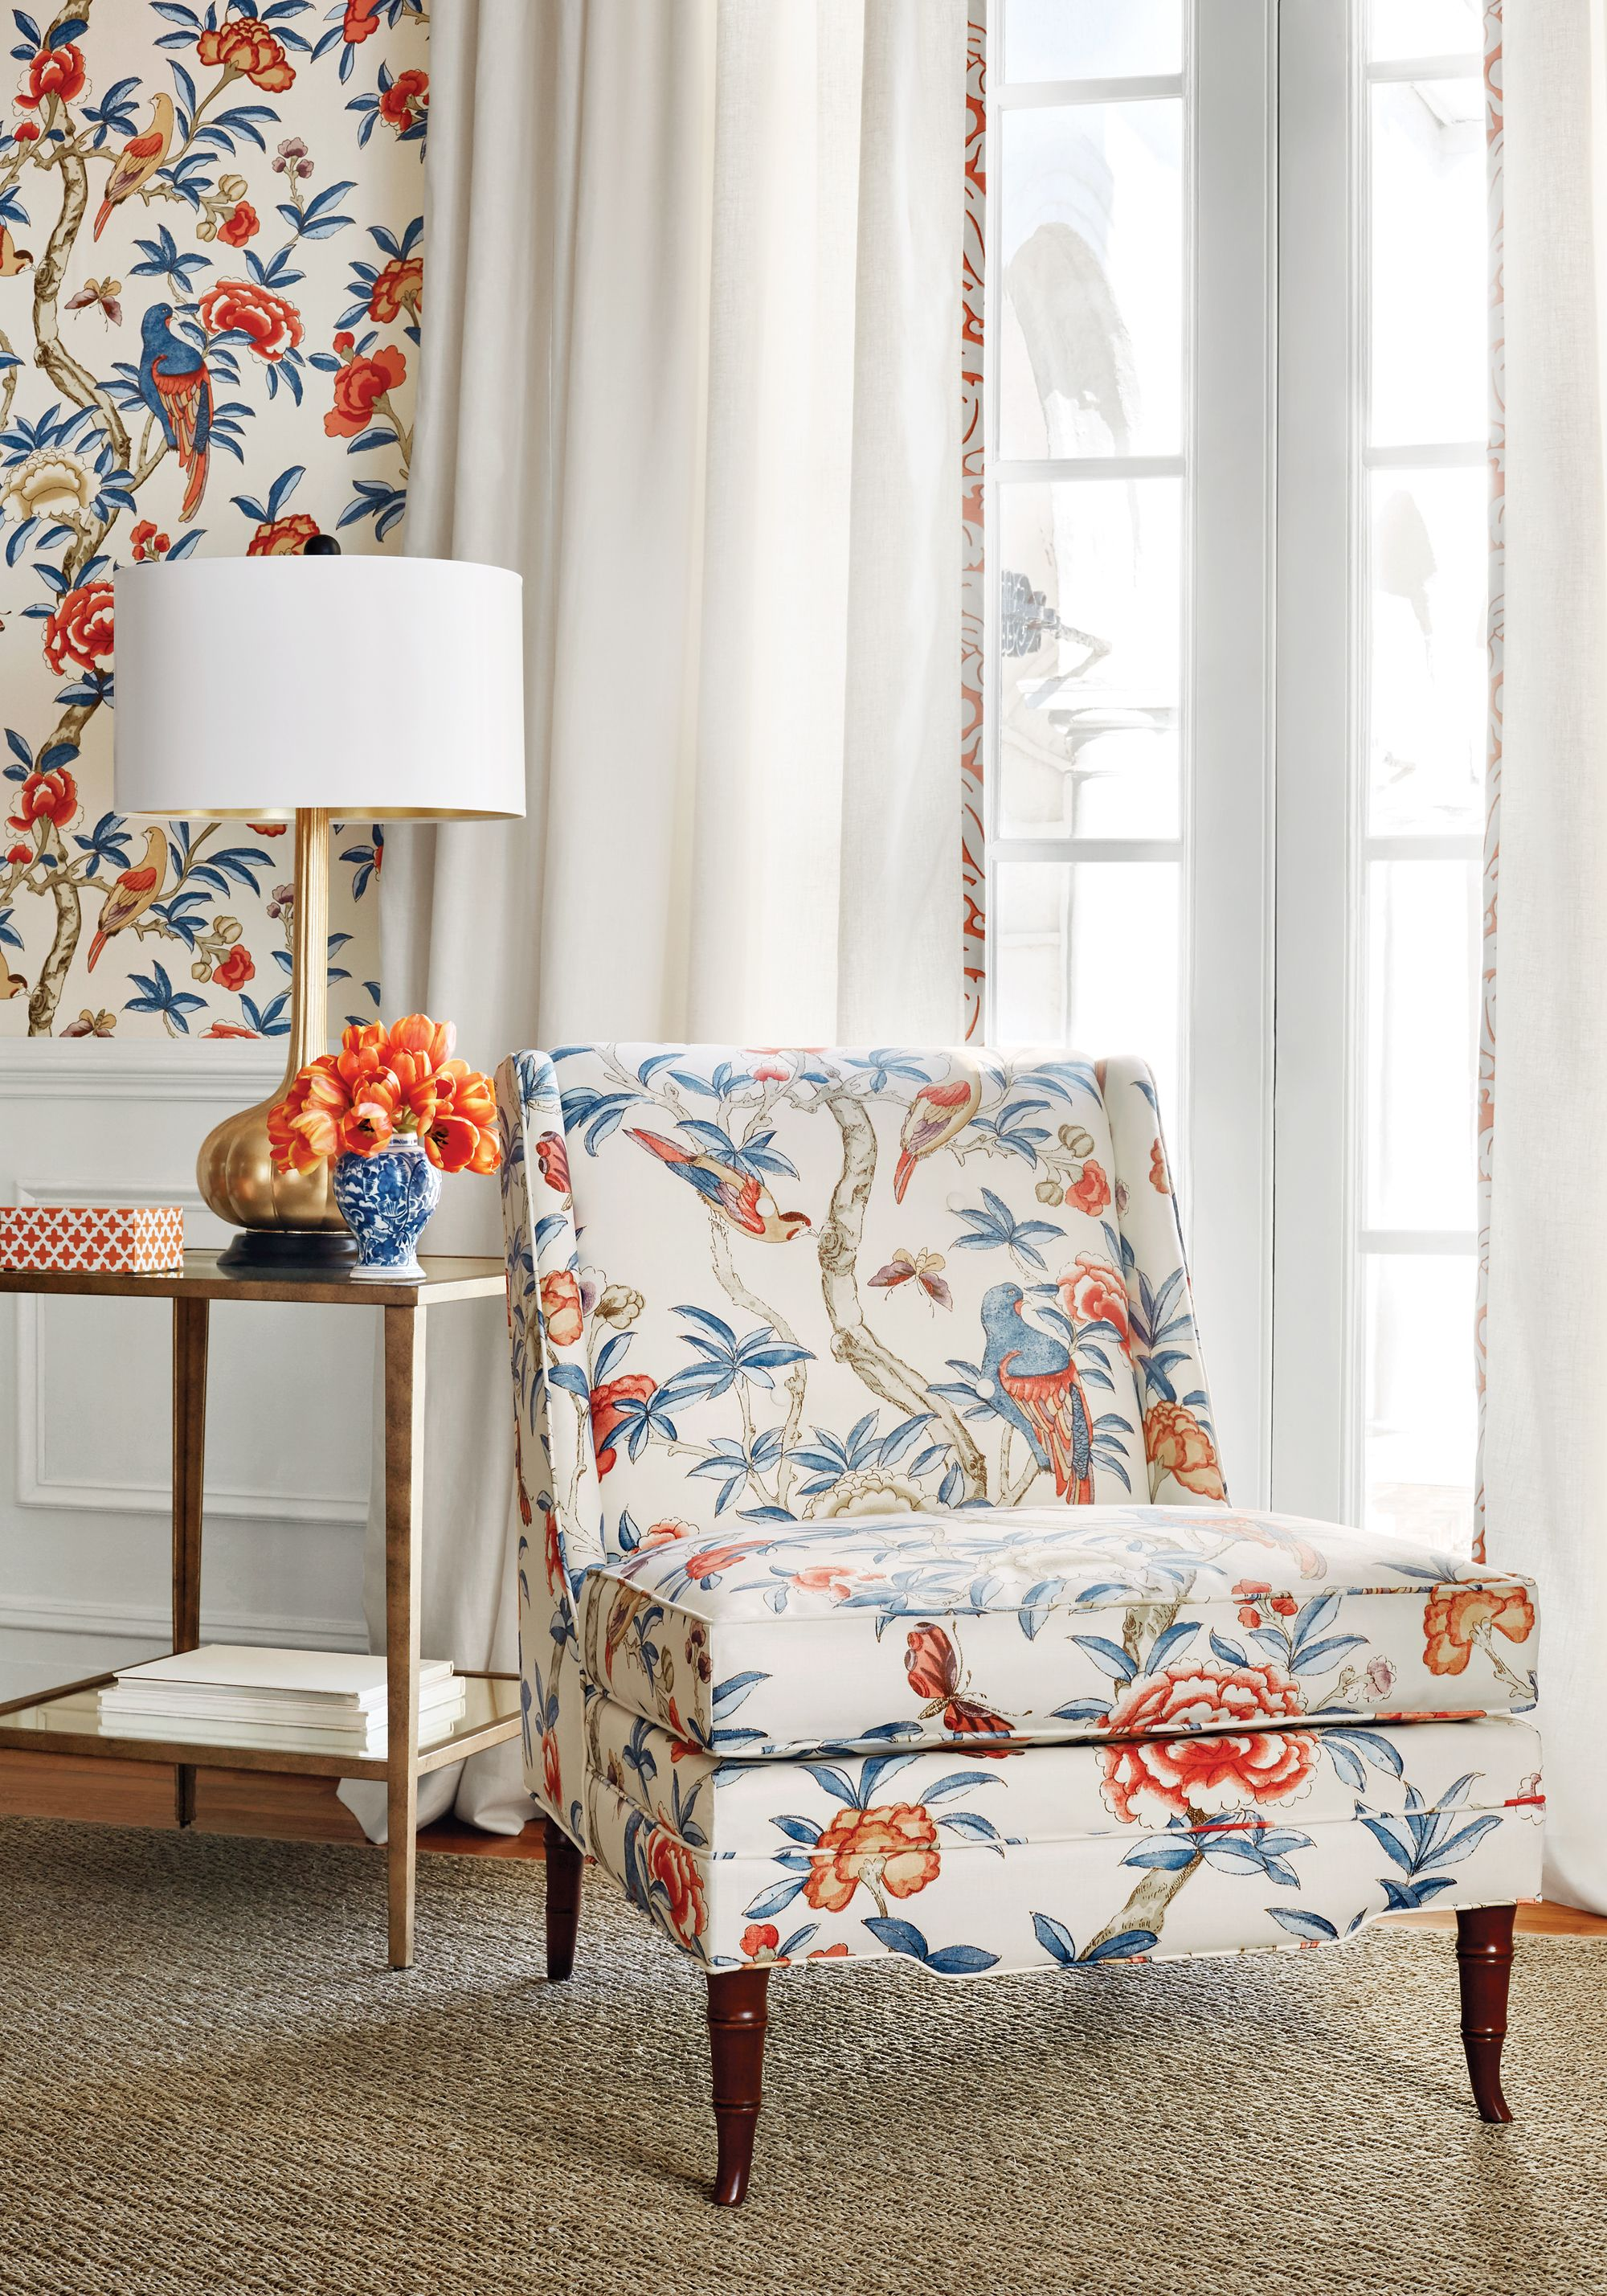 Bedford Chair from Thibaut Fine Furniture in Giselle printed fabric ...